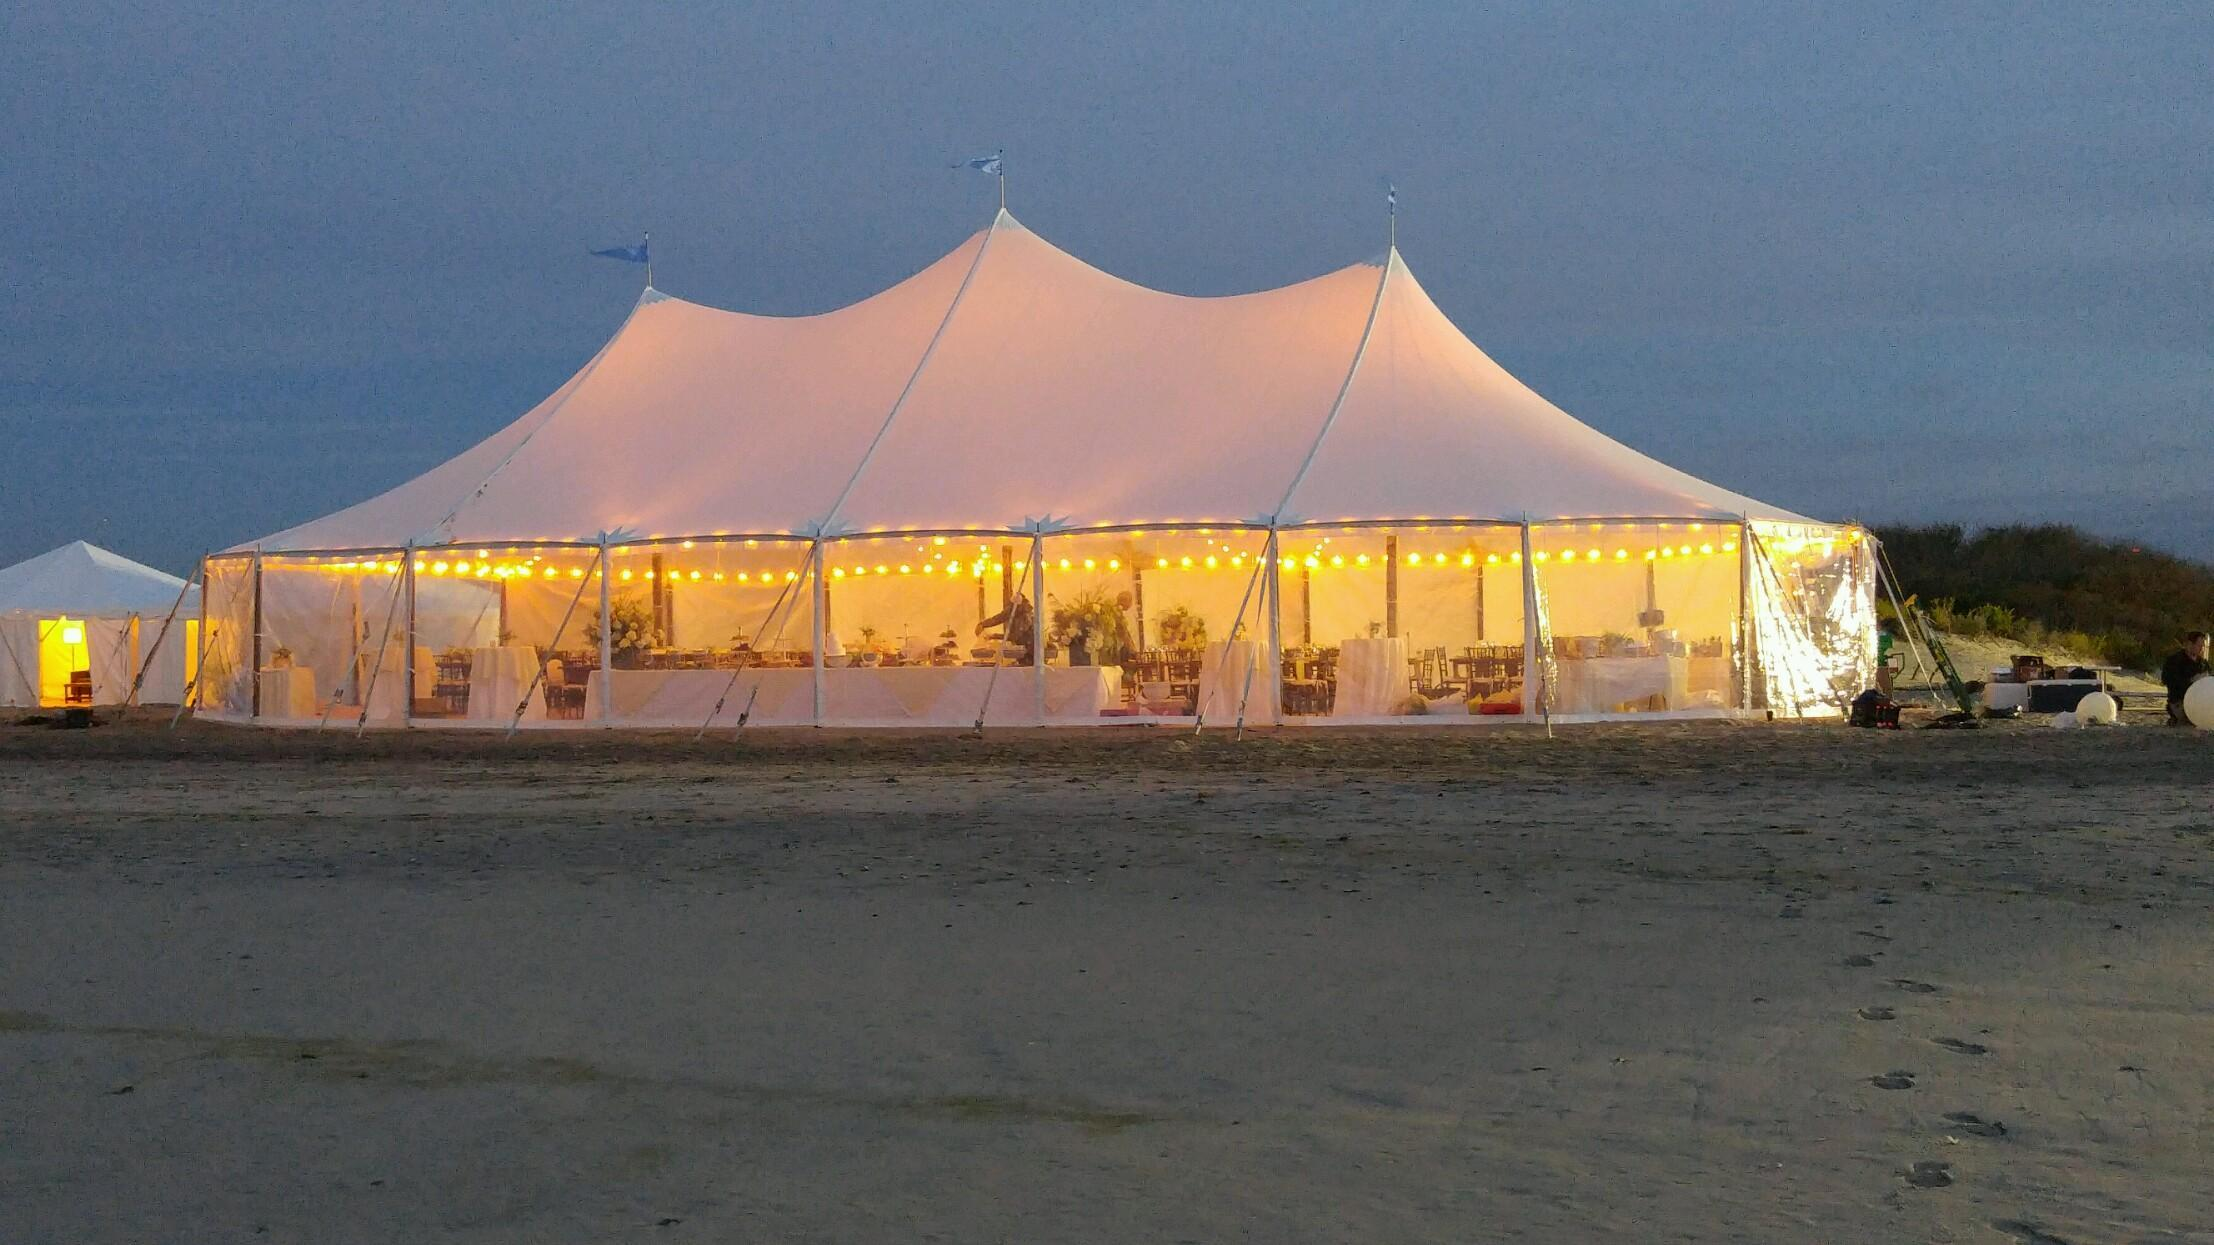 Lights on a sheer top wedding tent